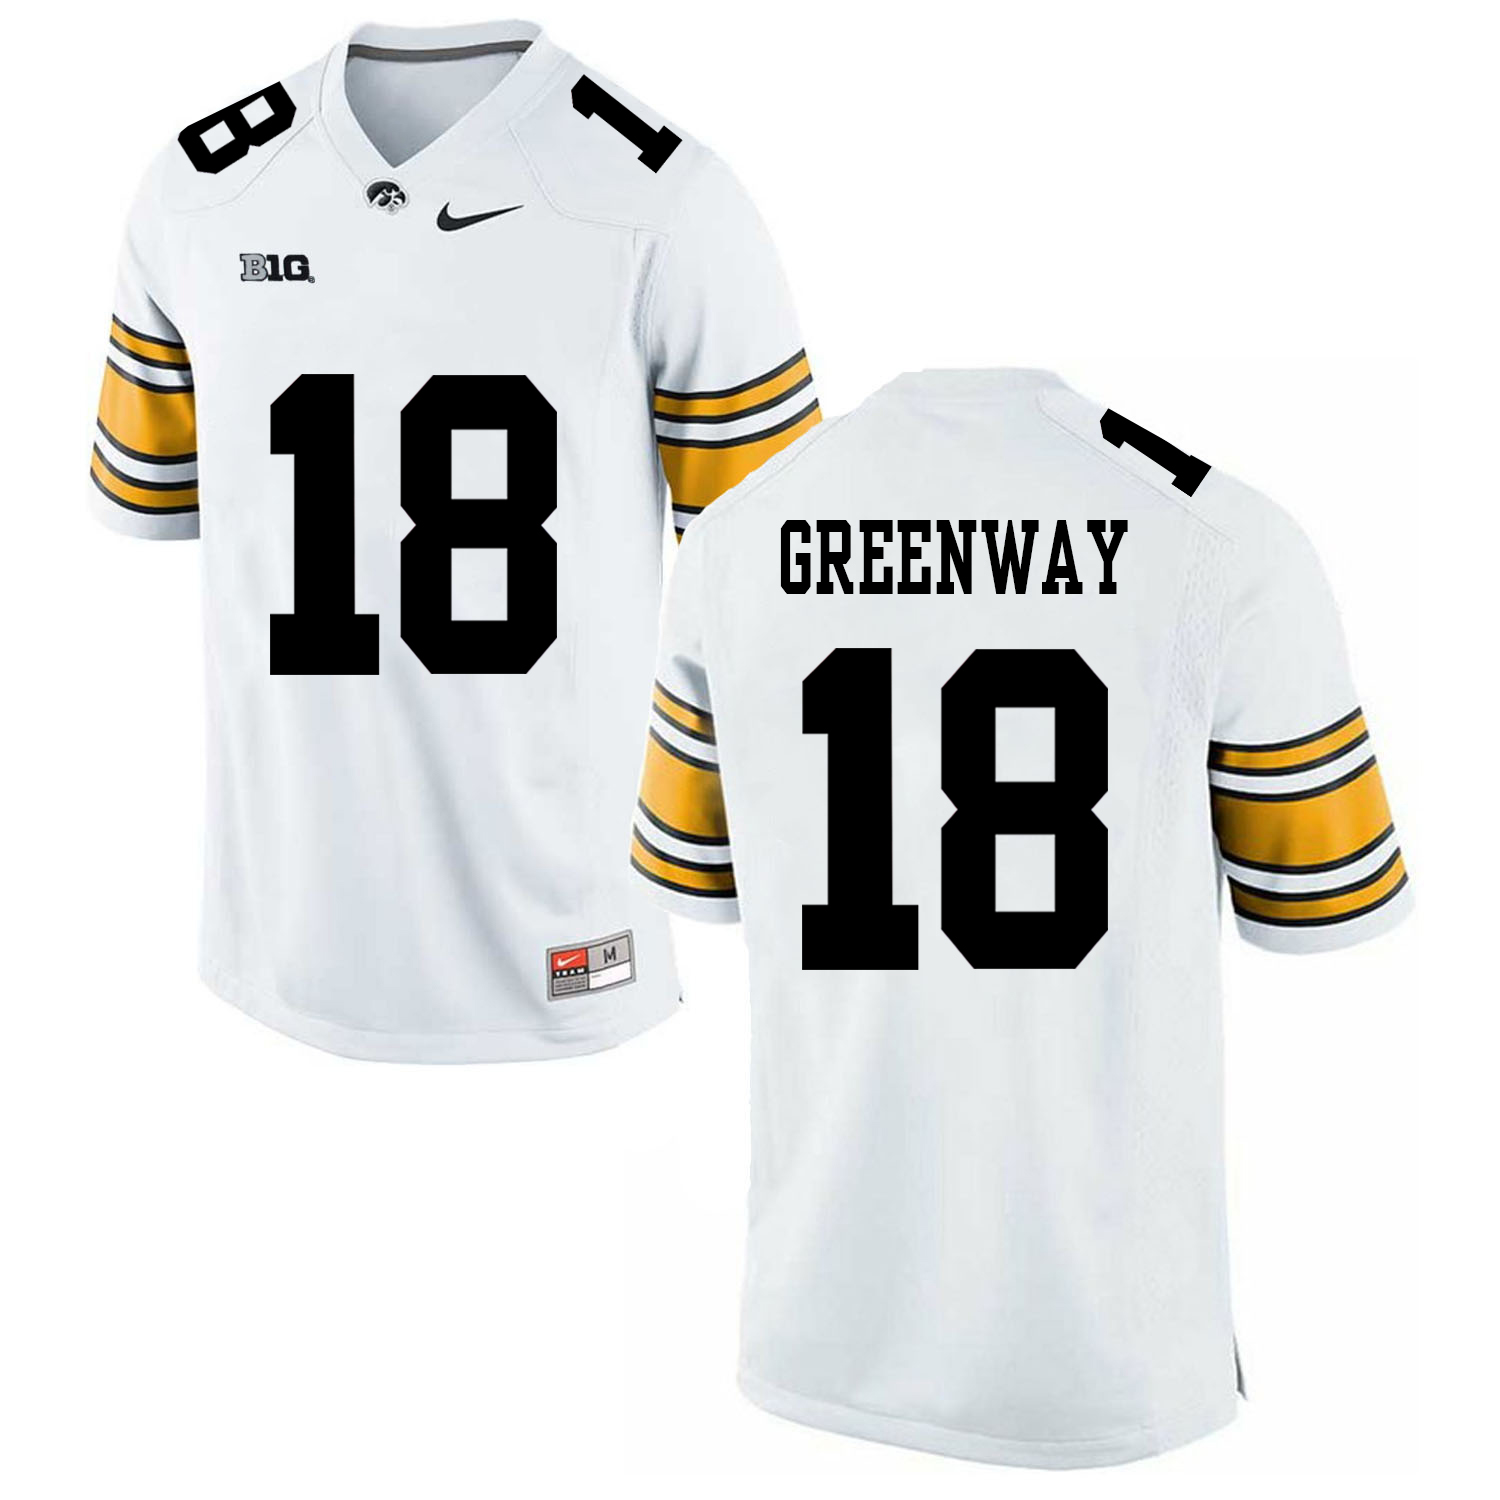 Iowa Hawkeyes 18 Chad Greenway WhiteBlack College Football Jersey